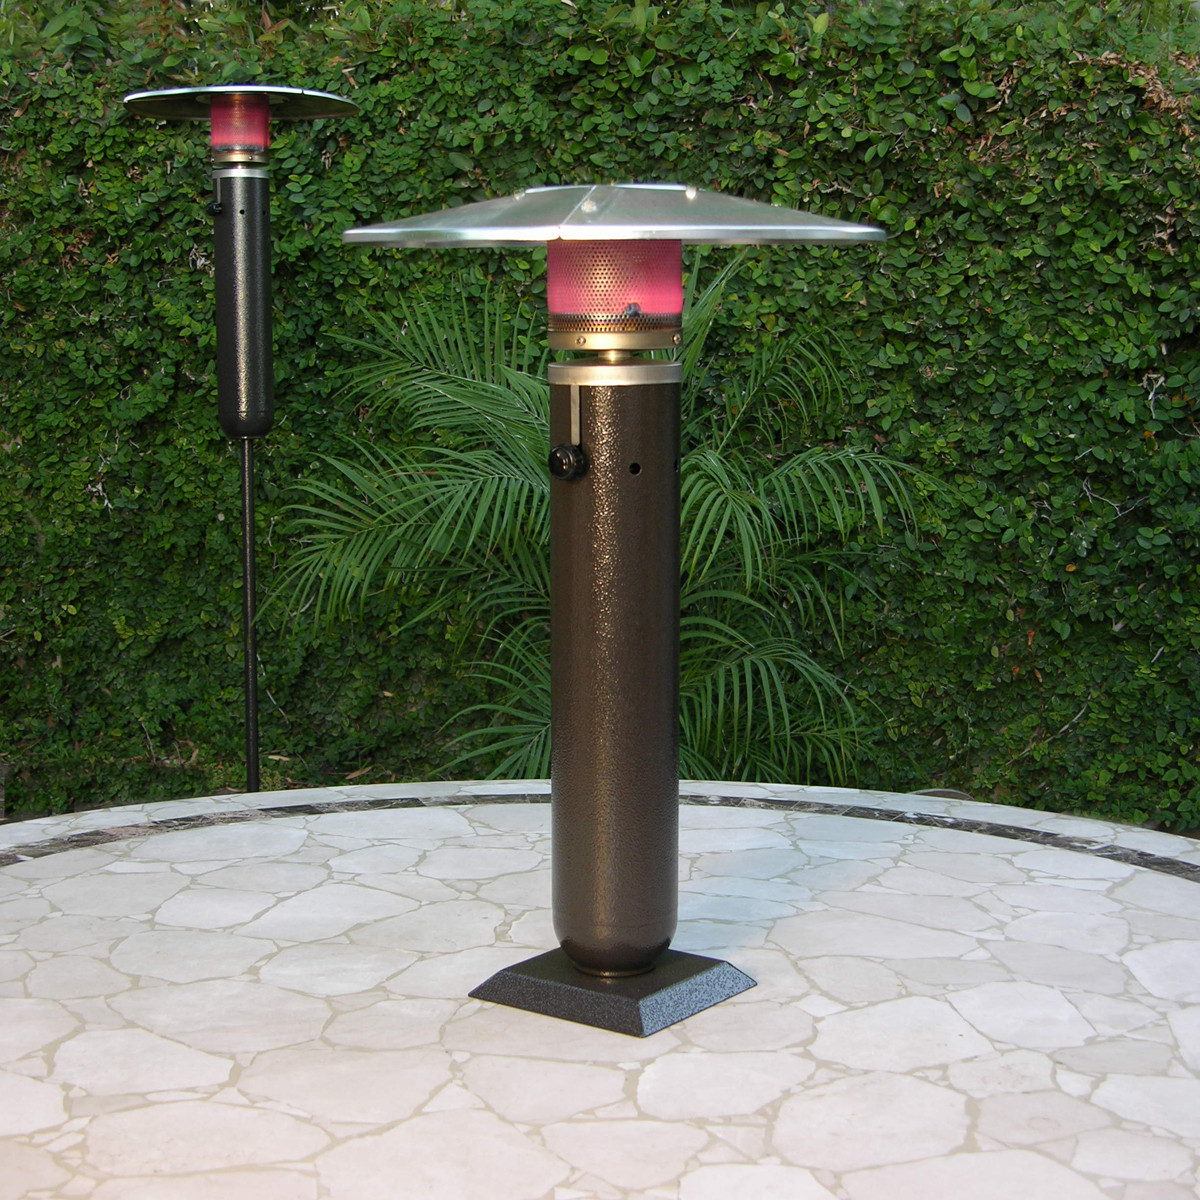 Patio Heater Conversion To Natural Gas